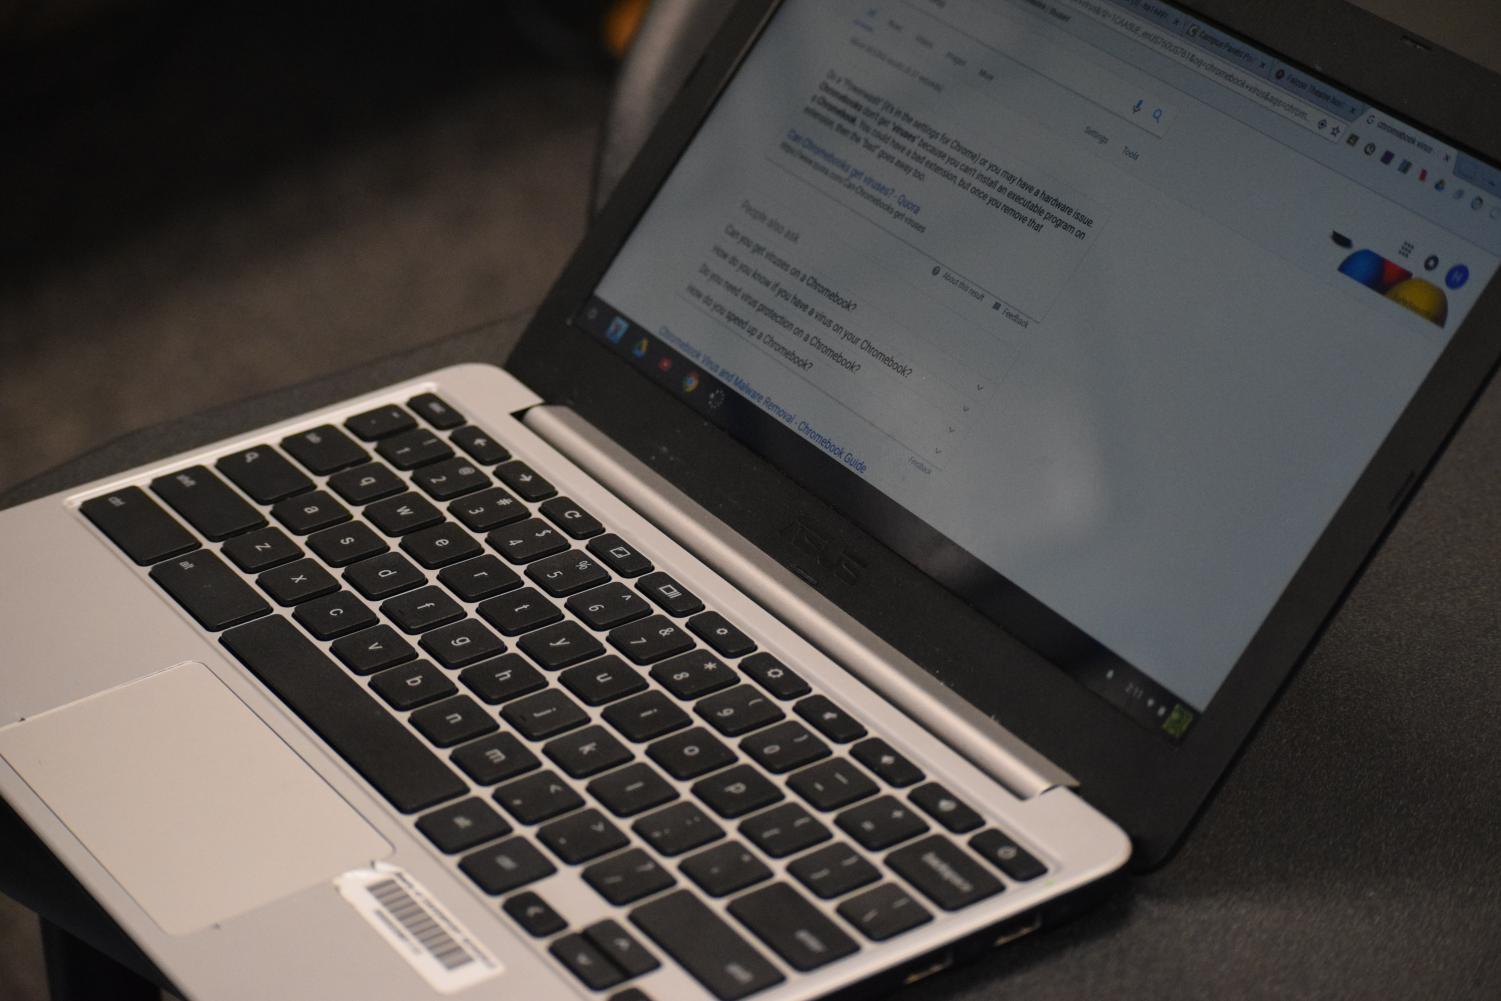 Students notice adware virus on Chromebooks when using search engines such as Google.